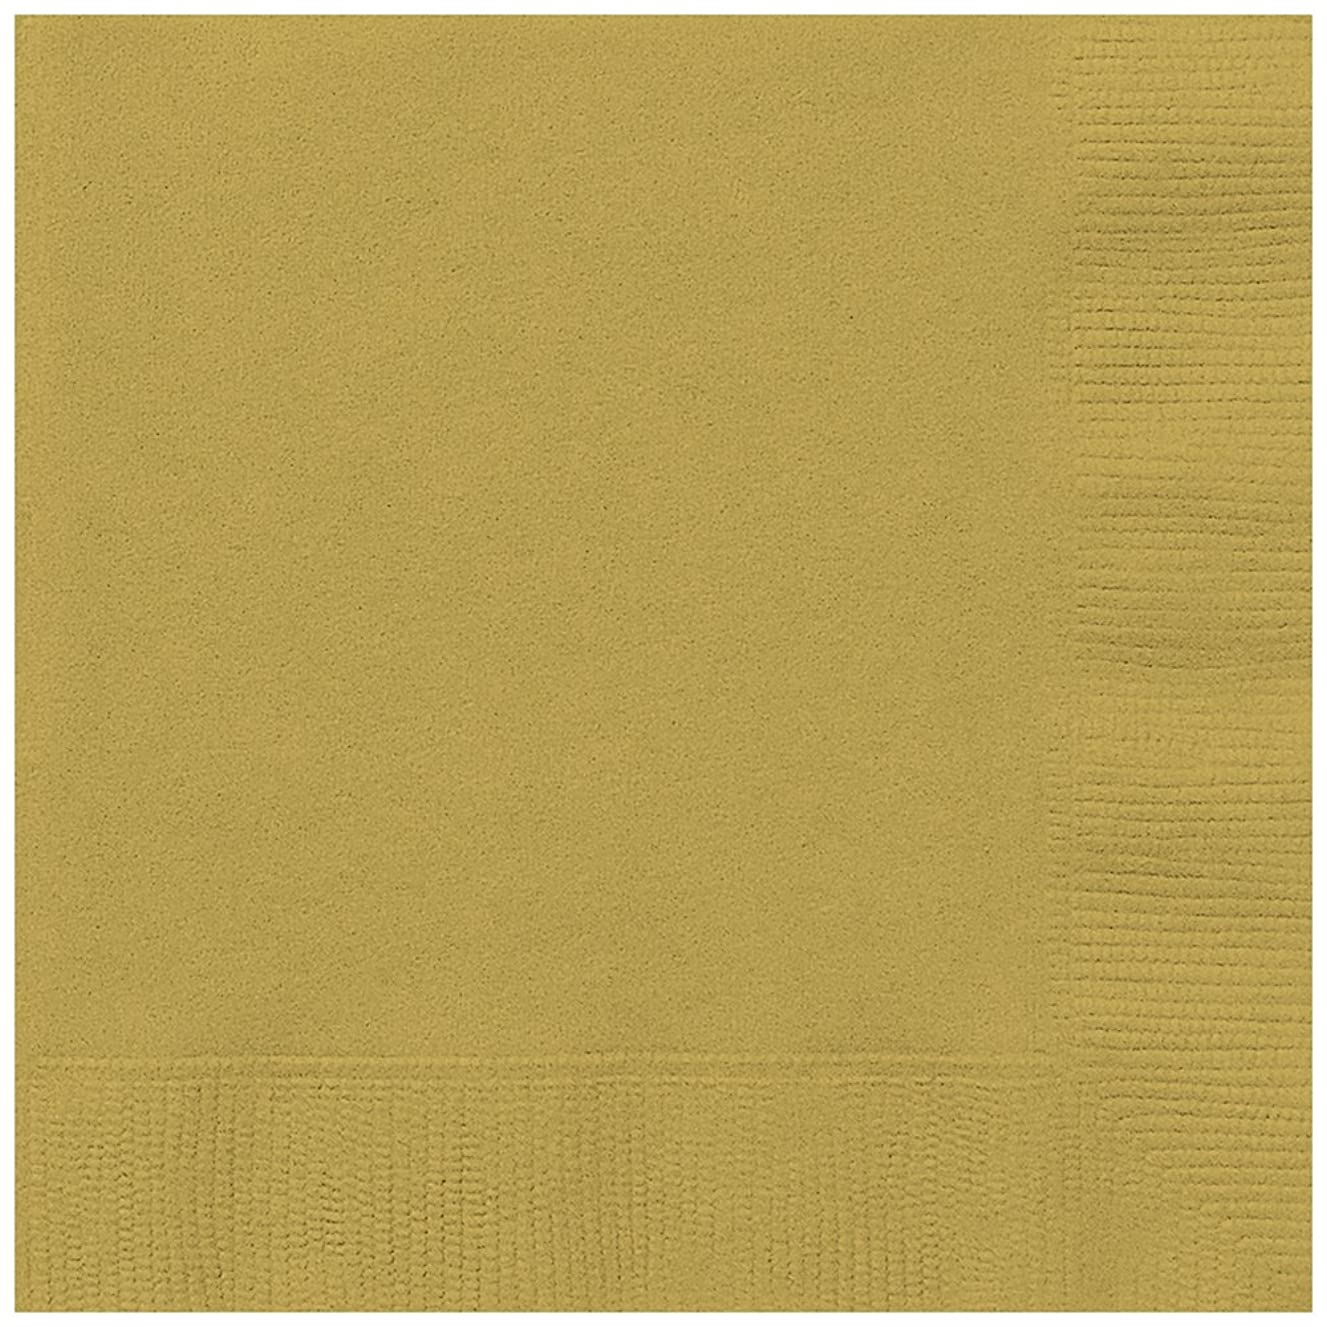 Gold Beverage Napkins, 50ct